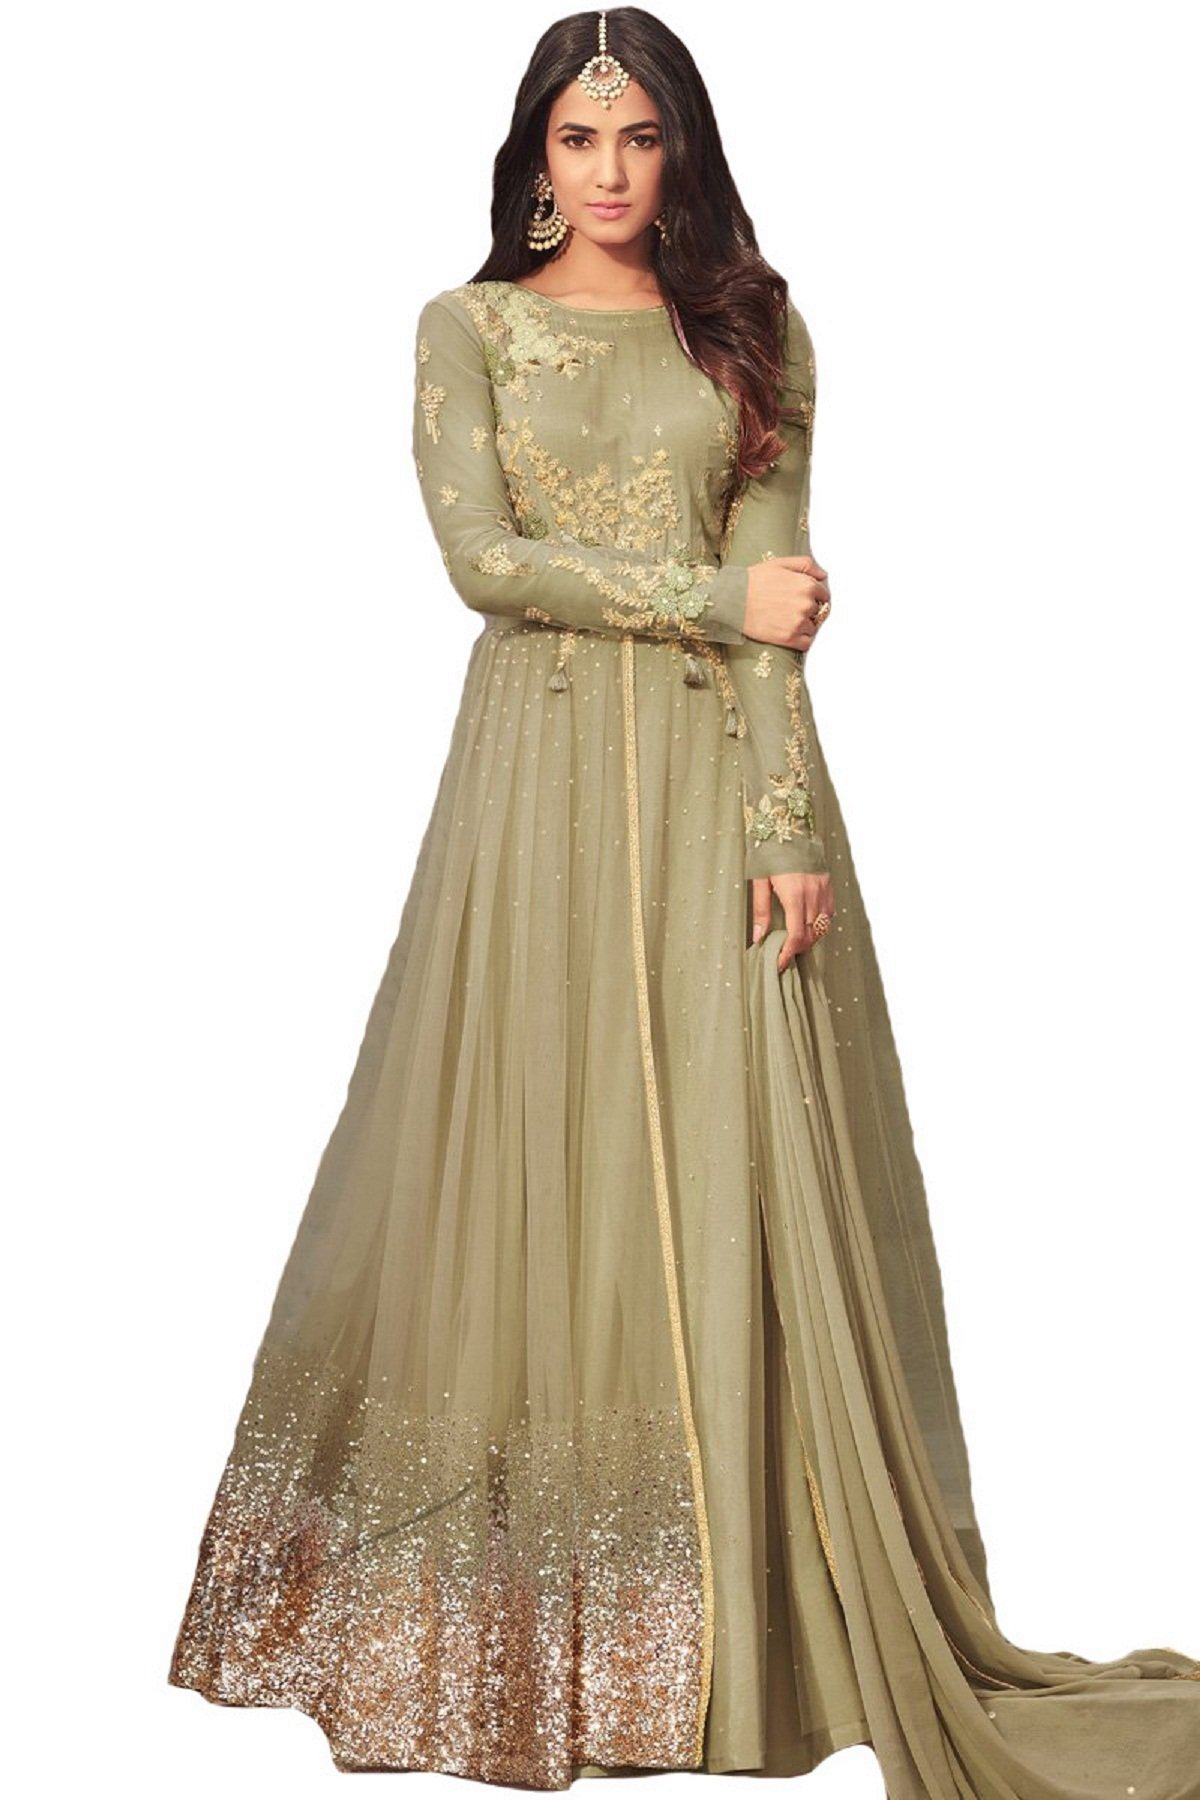 ab4f2a472a2 Galleon - Ziya Ready Made Net Latest Embroidered And With Beautiful  Anarkali Designer Salwar Kameez Maisha (Light Green